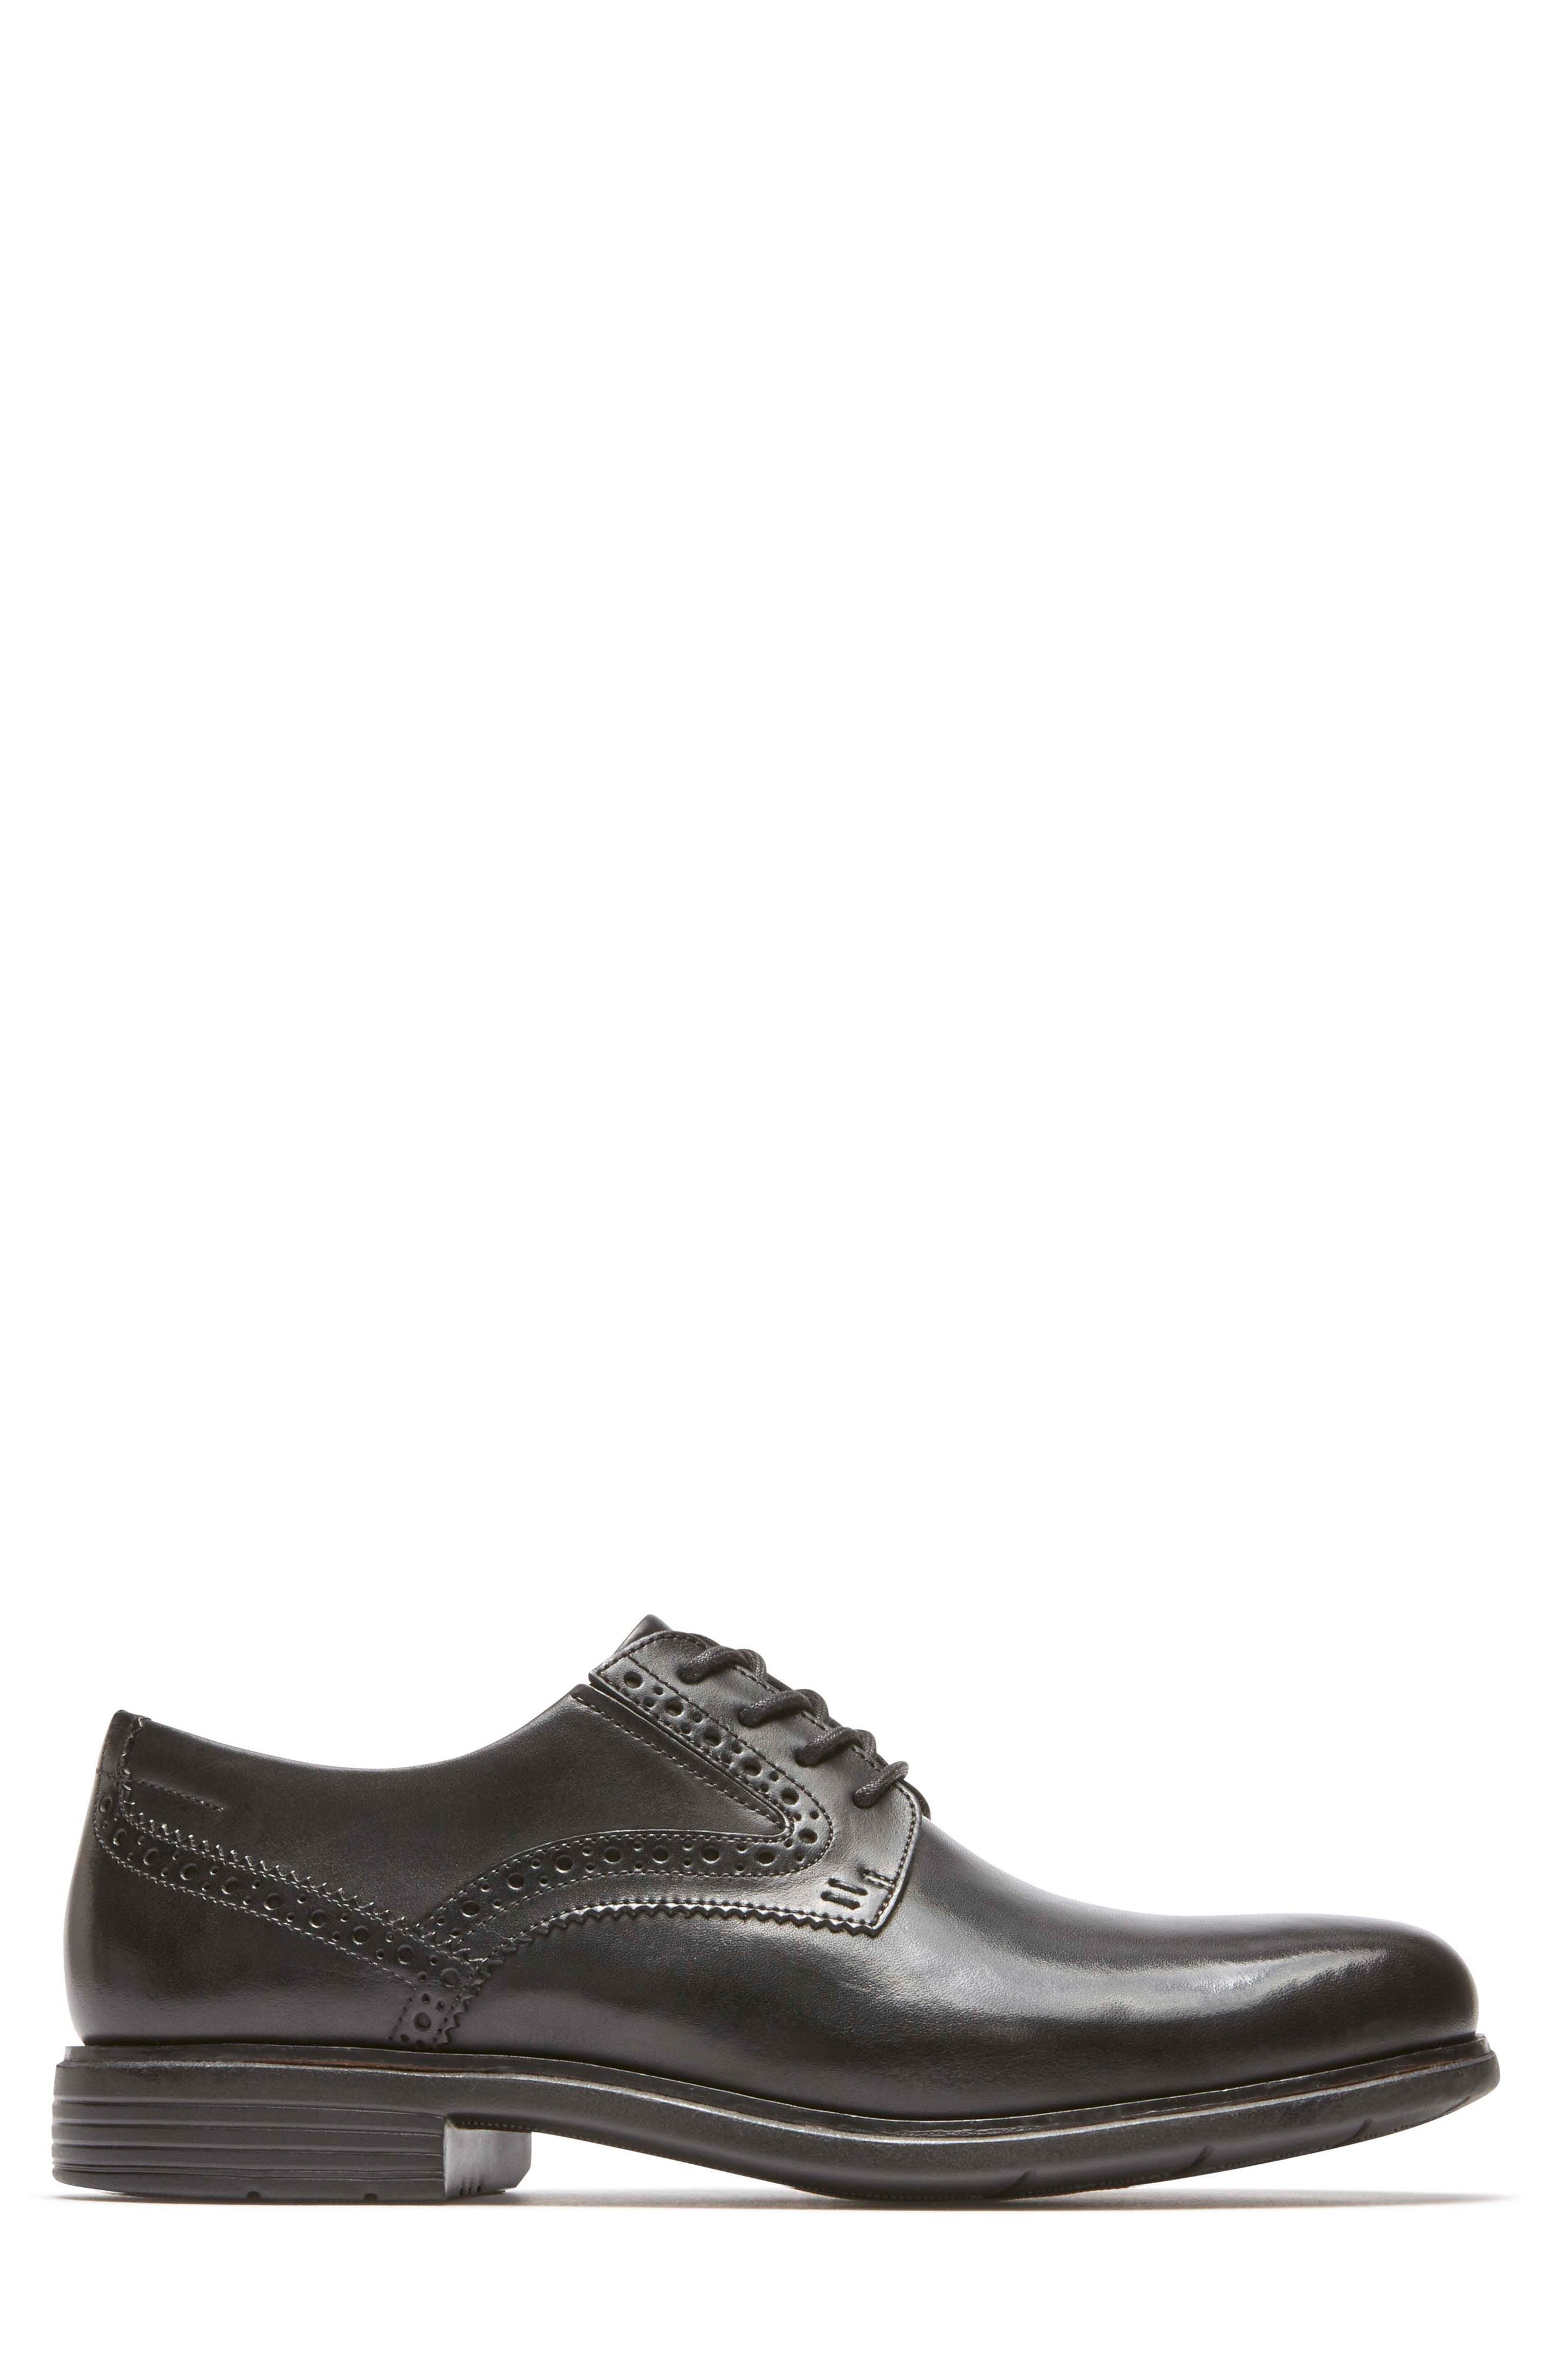 Total Motion Classic Dress Plain Toe Derby,                             Alternate thumbnail 3, color,                             Black Leather